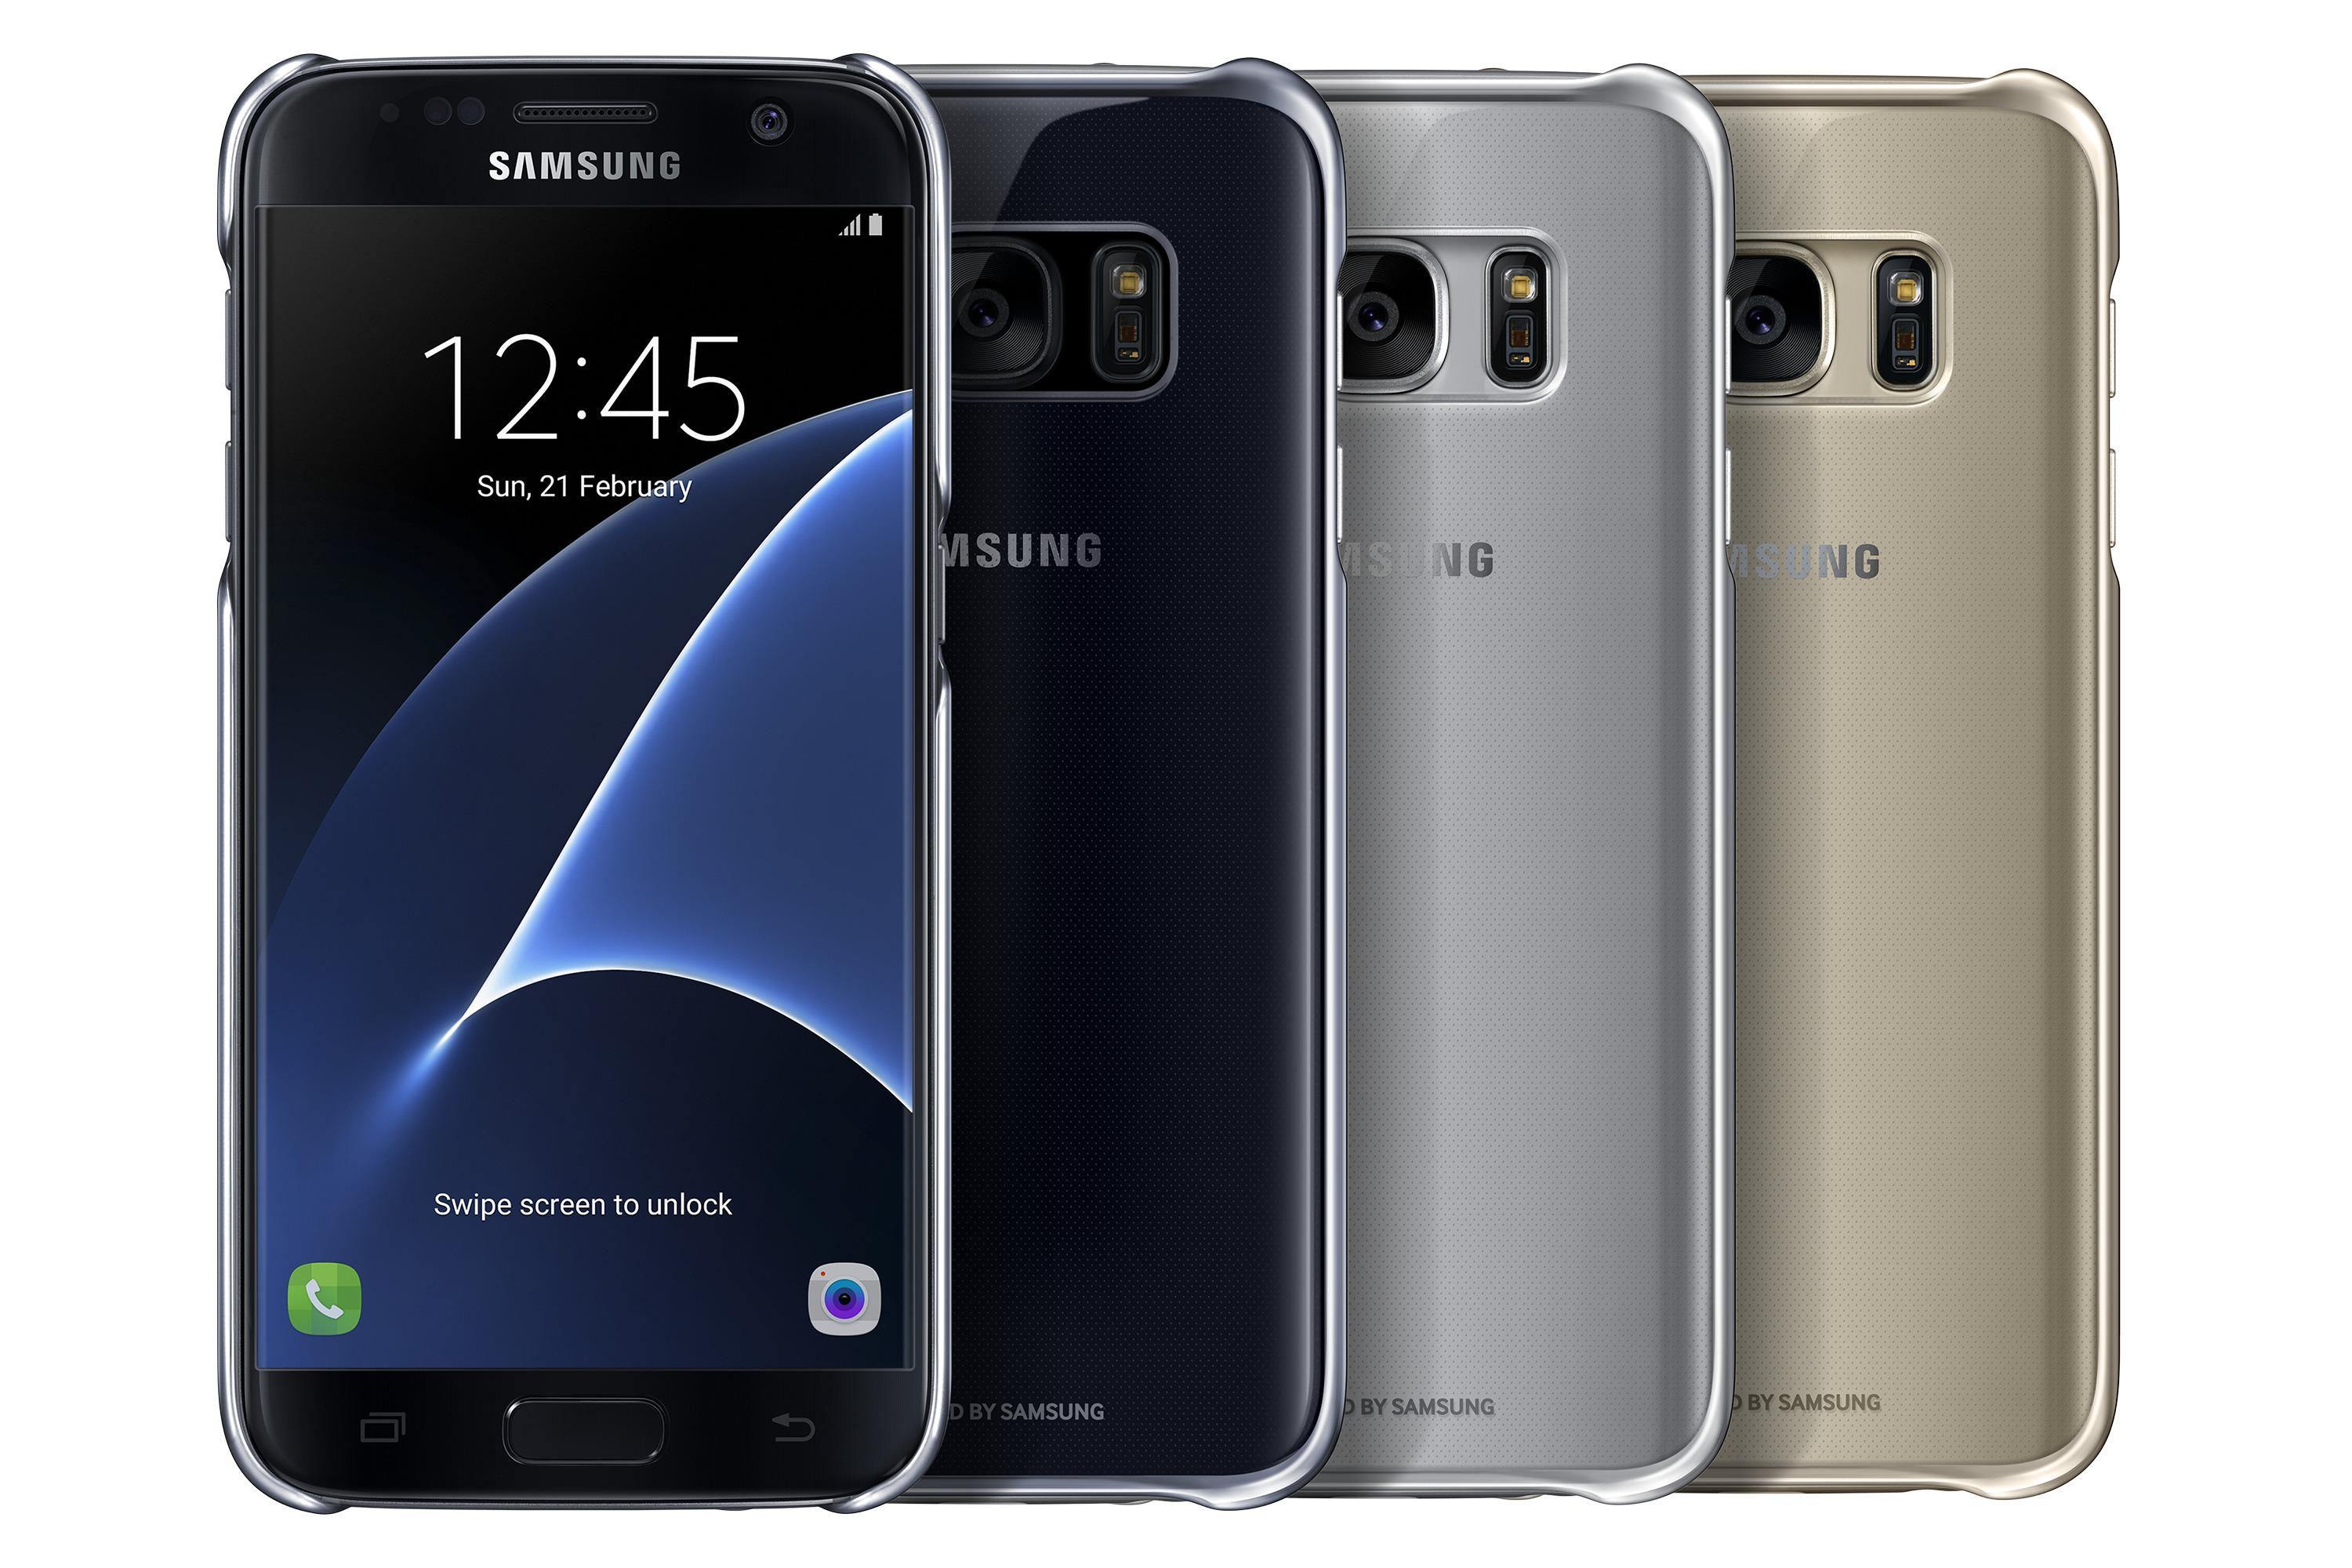 samsung galaxy s7 case clear protective cover. Black Bedroom Furniture Sets. Home Design Ideas